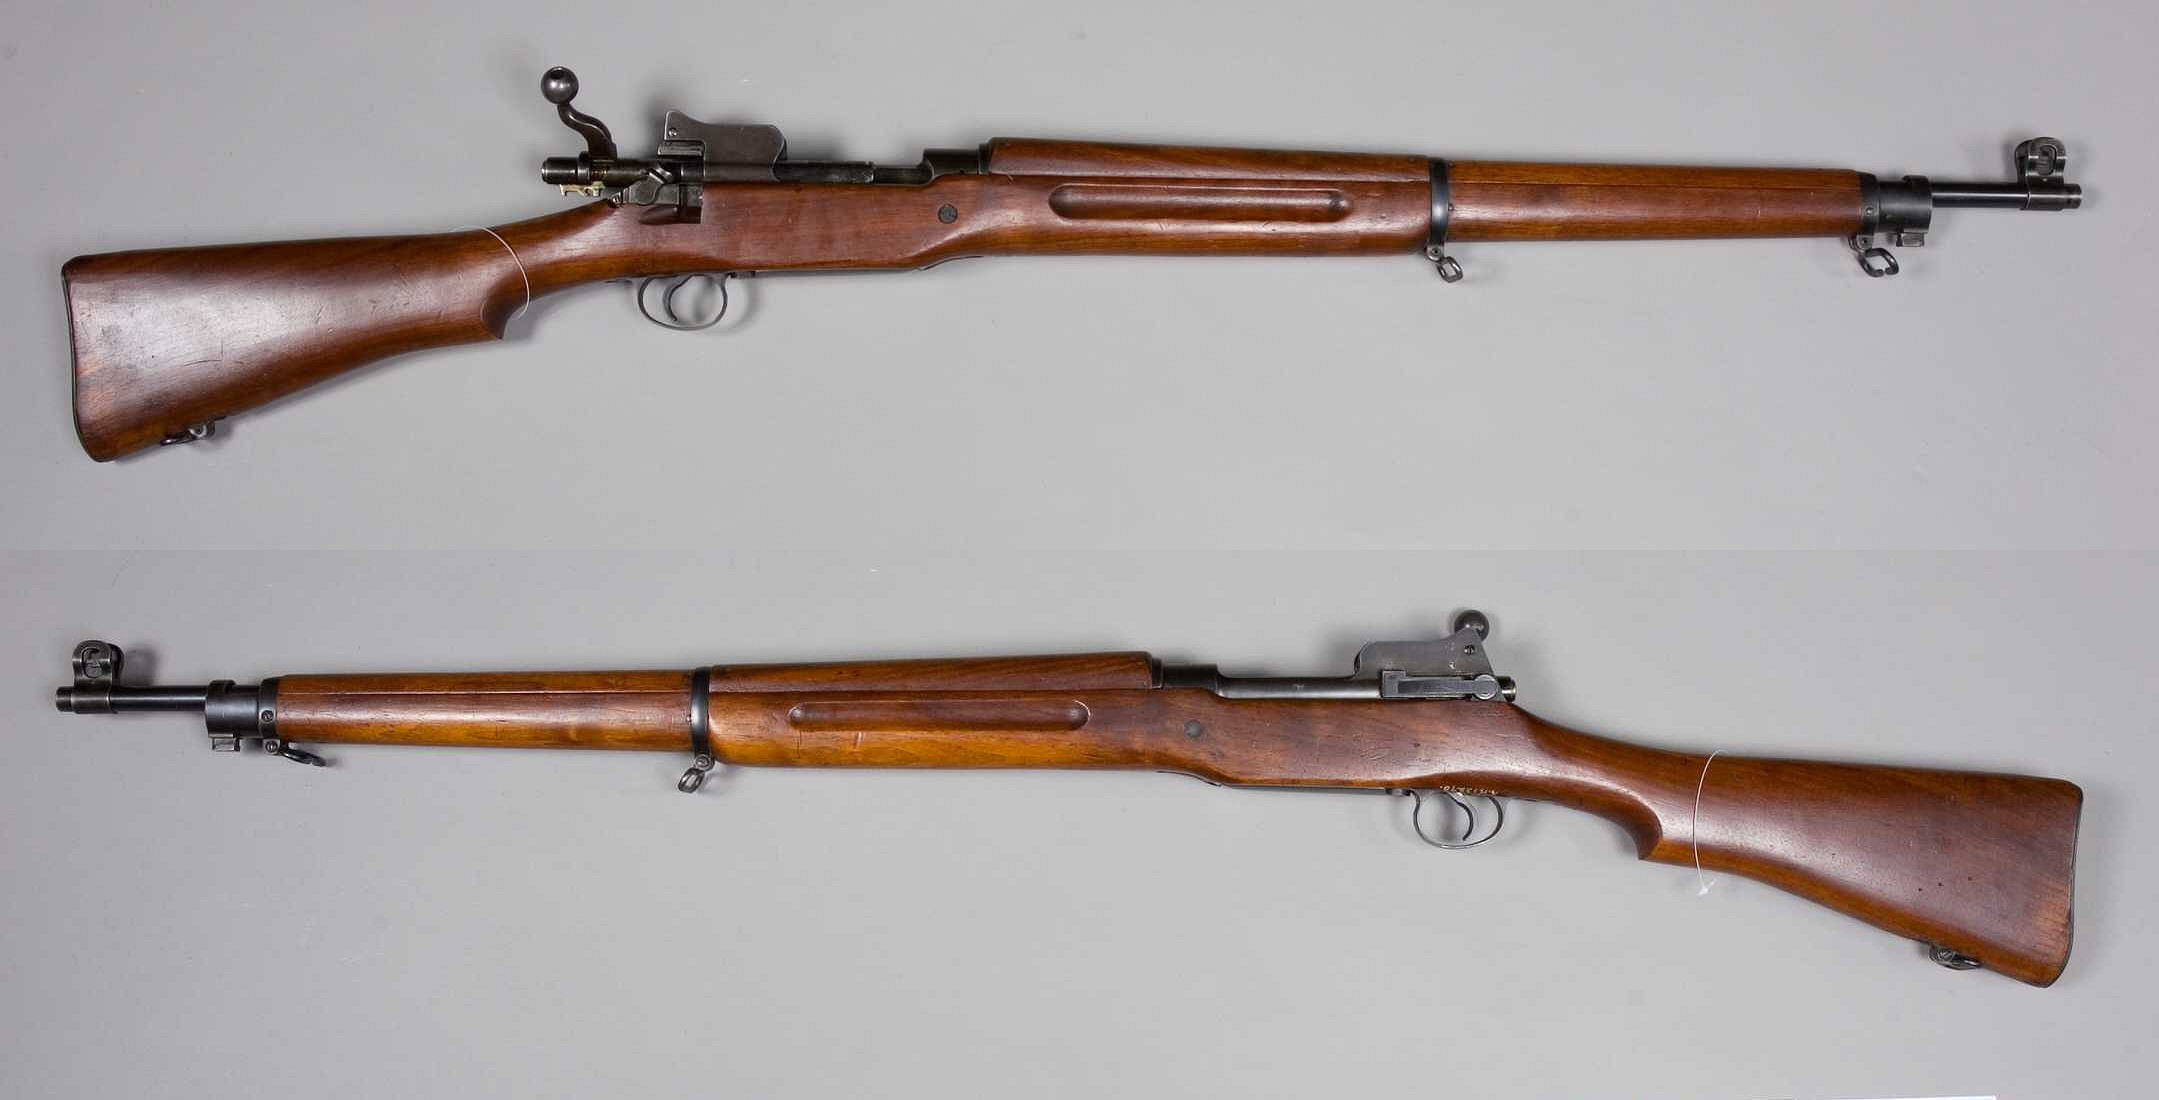 M1917_Enfield_-_USA_-_30-06_-_Arm%C3%A9museum.jpg